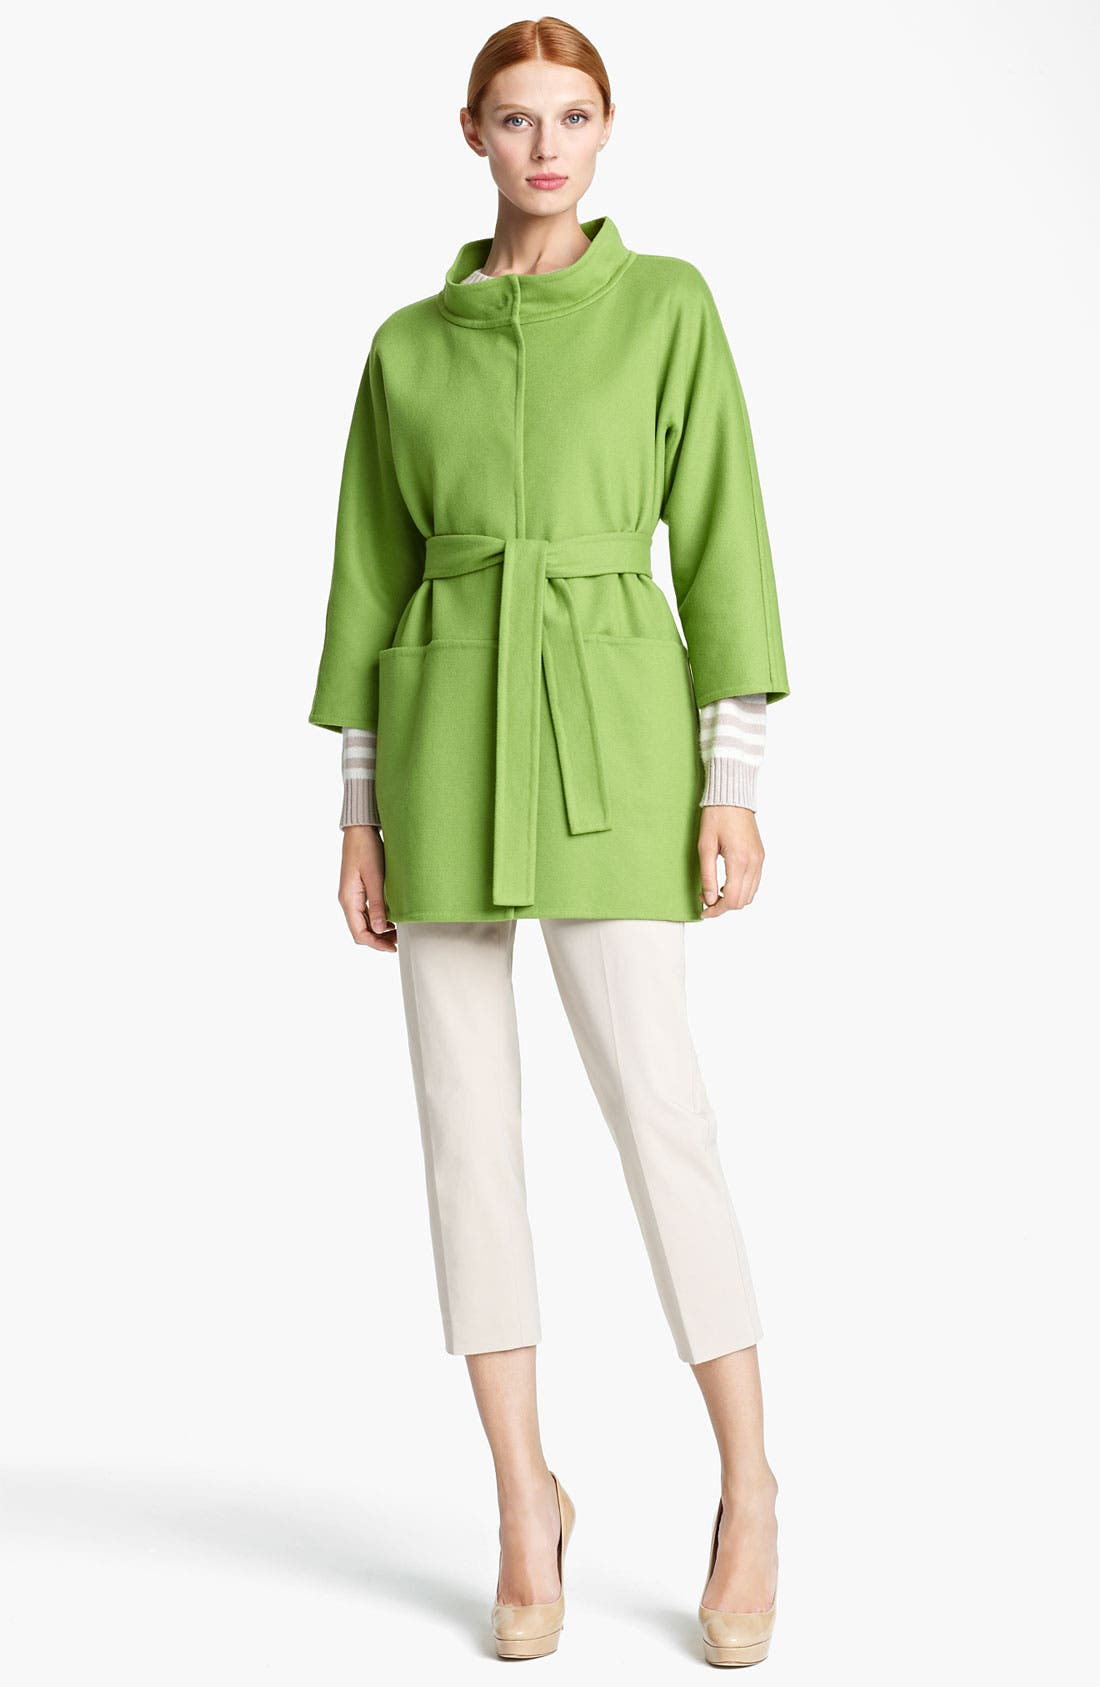 Main Image - Max Mara 'Lipari' Belted Wool Blend Coat